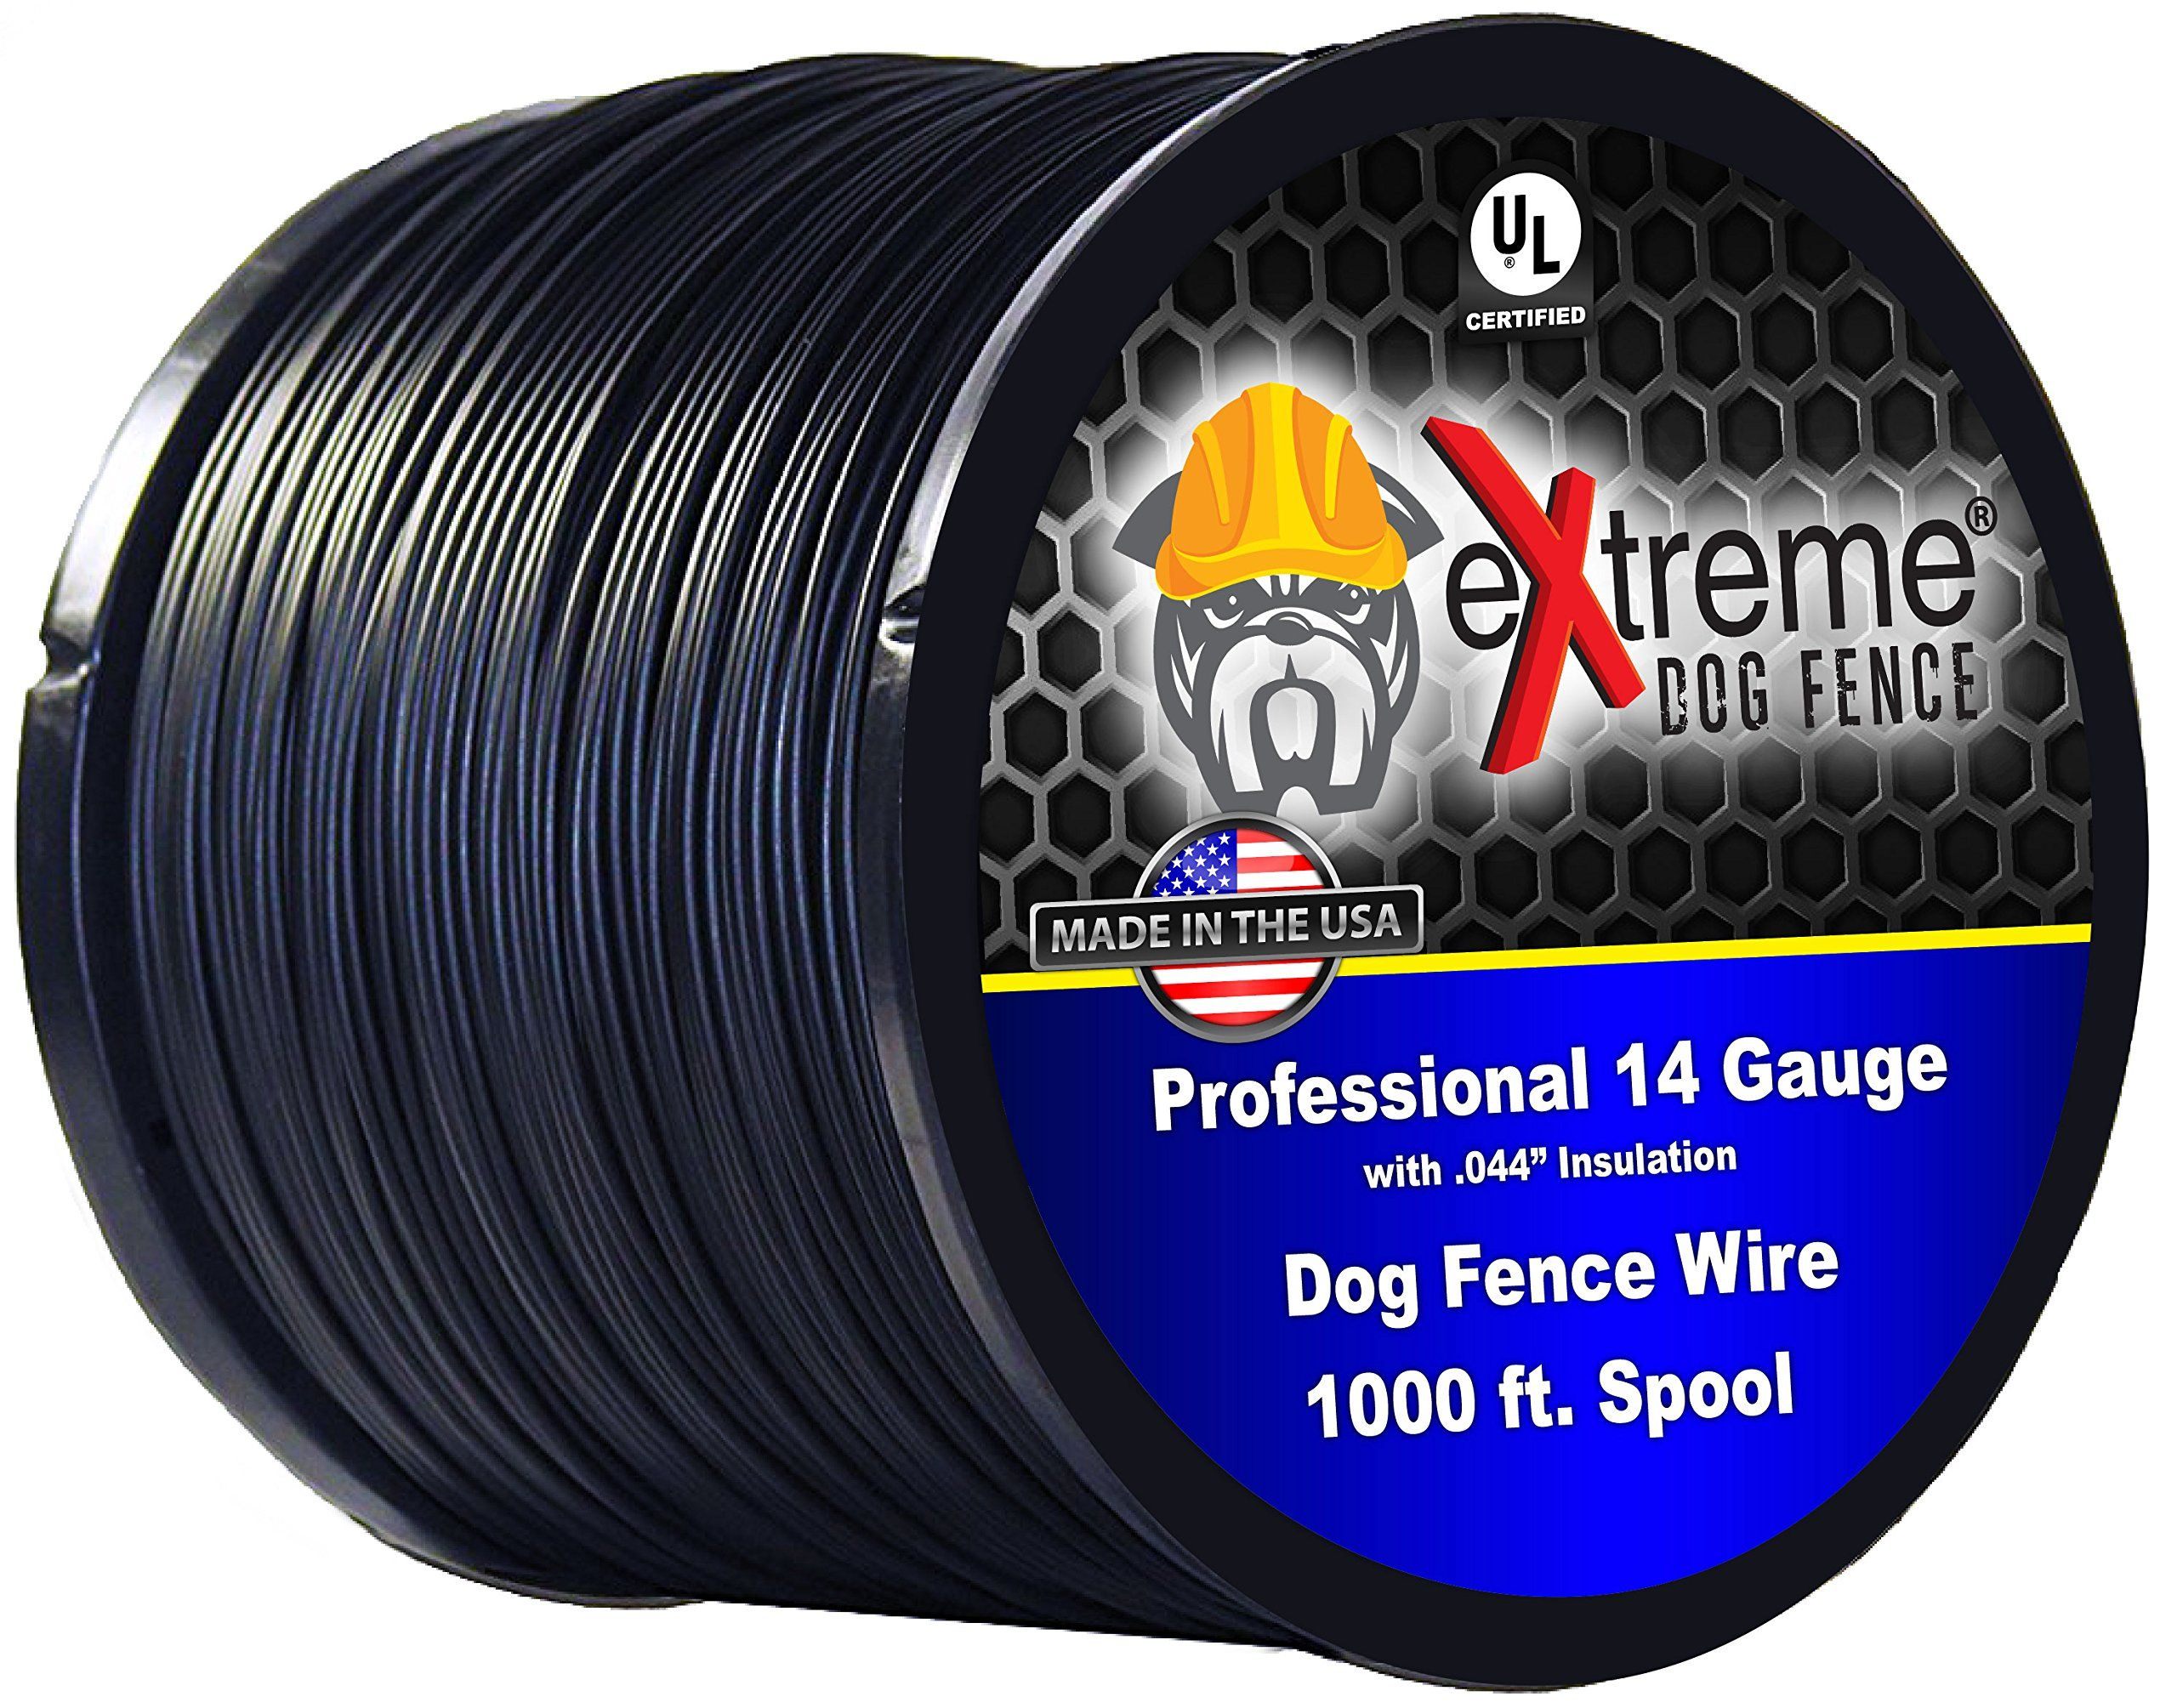 Dog Fence Wire Pure Copper 2000 Feet Of 14 Gauge 044 Professional Grade Electric Dog Fence Boundary Wire Solid Copper Core Weatherpr Dog Fence Wire Fence Pure Copper